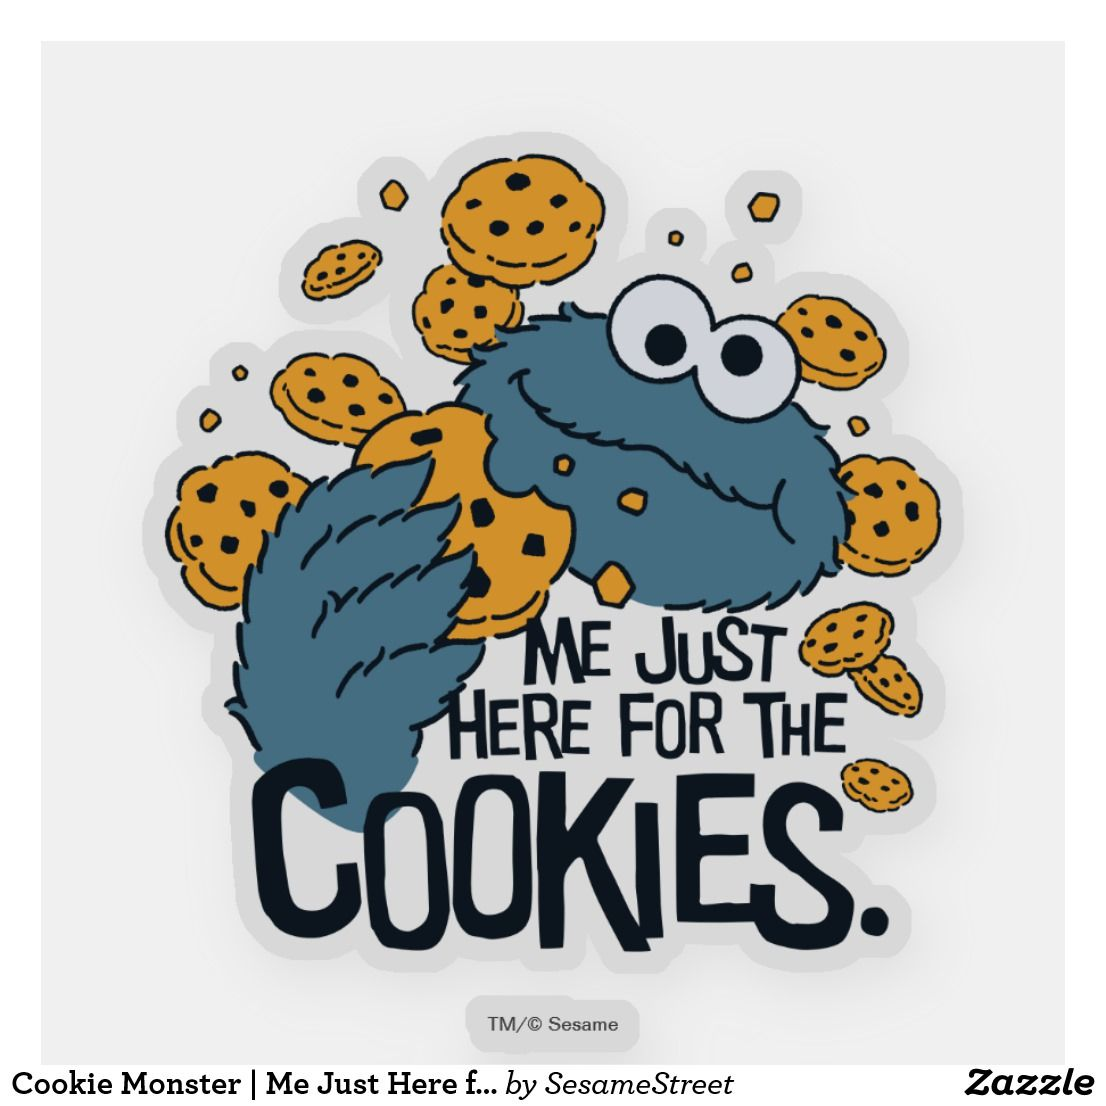 Cookie Monster Me Just Here For The Cookies Sticker Zazzle Com In 2021 Cookie Monster Wallpaper Monster Cookies Monster Stickers